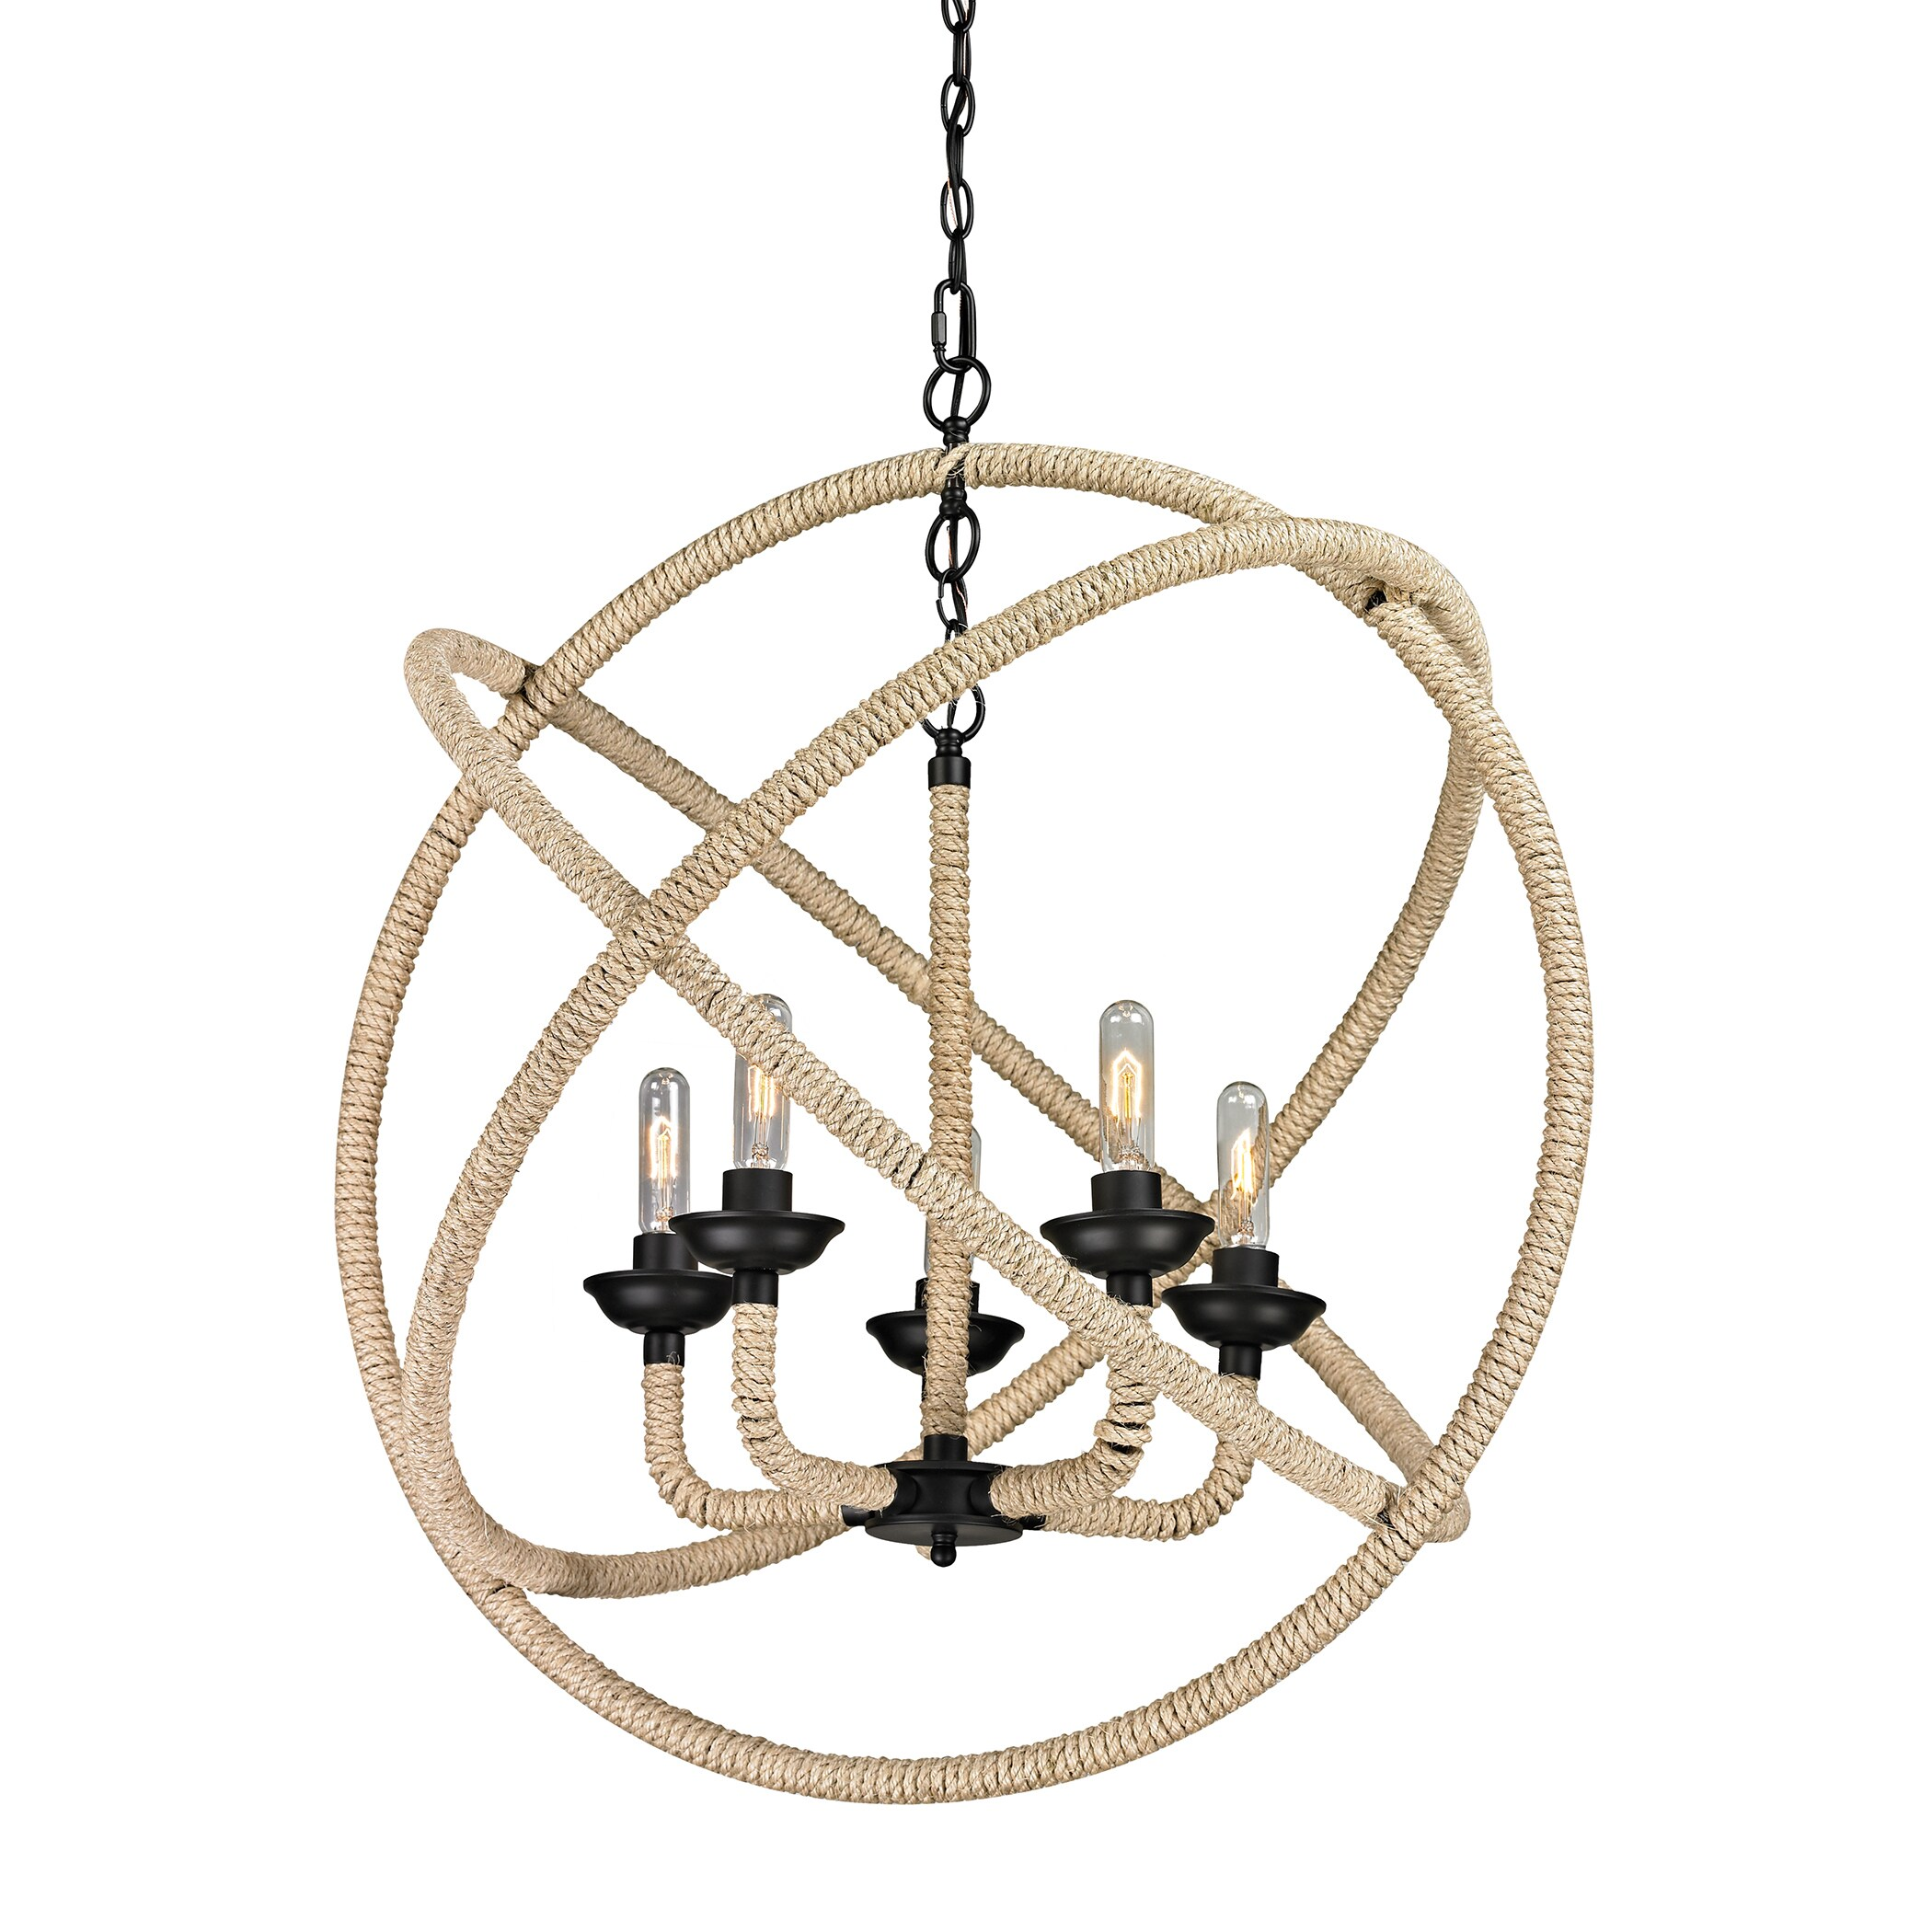 Elk lighting pearce 5 light matte black and rope chandelier